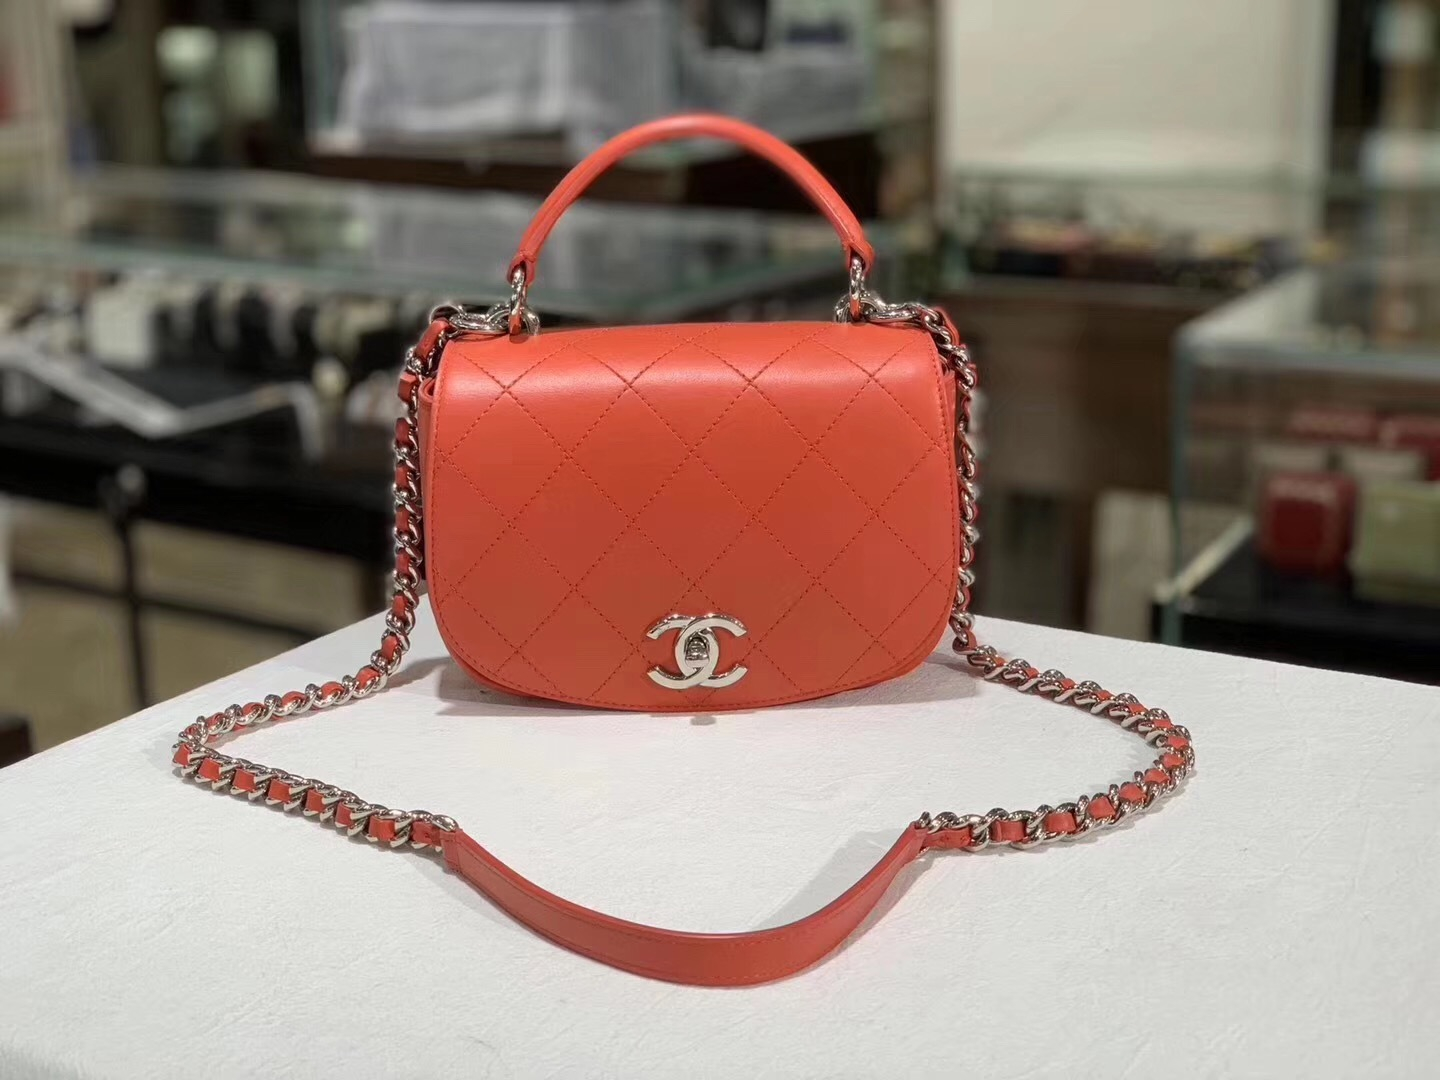 100% Auth NEW Chanel RED Quilted Calfskin Top Handle Flap Bag RECEIPT